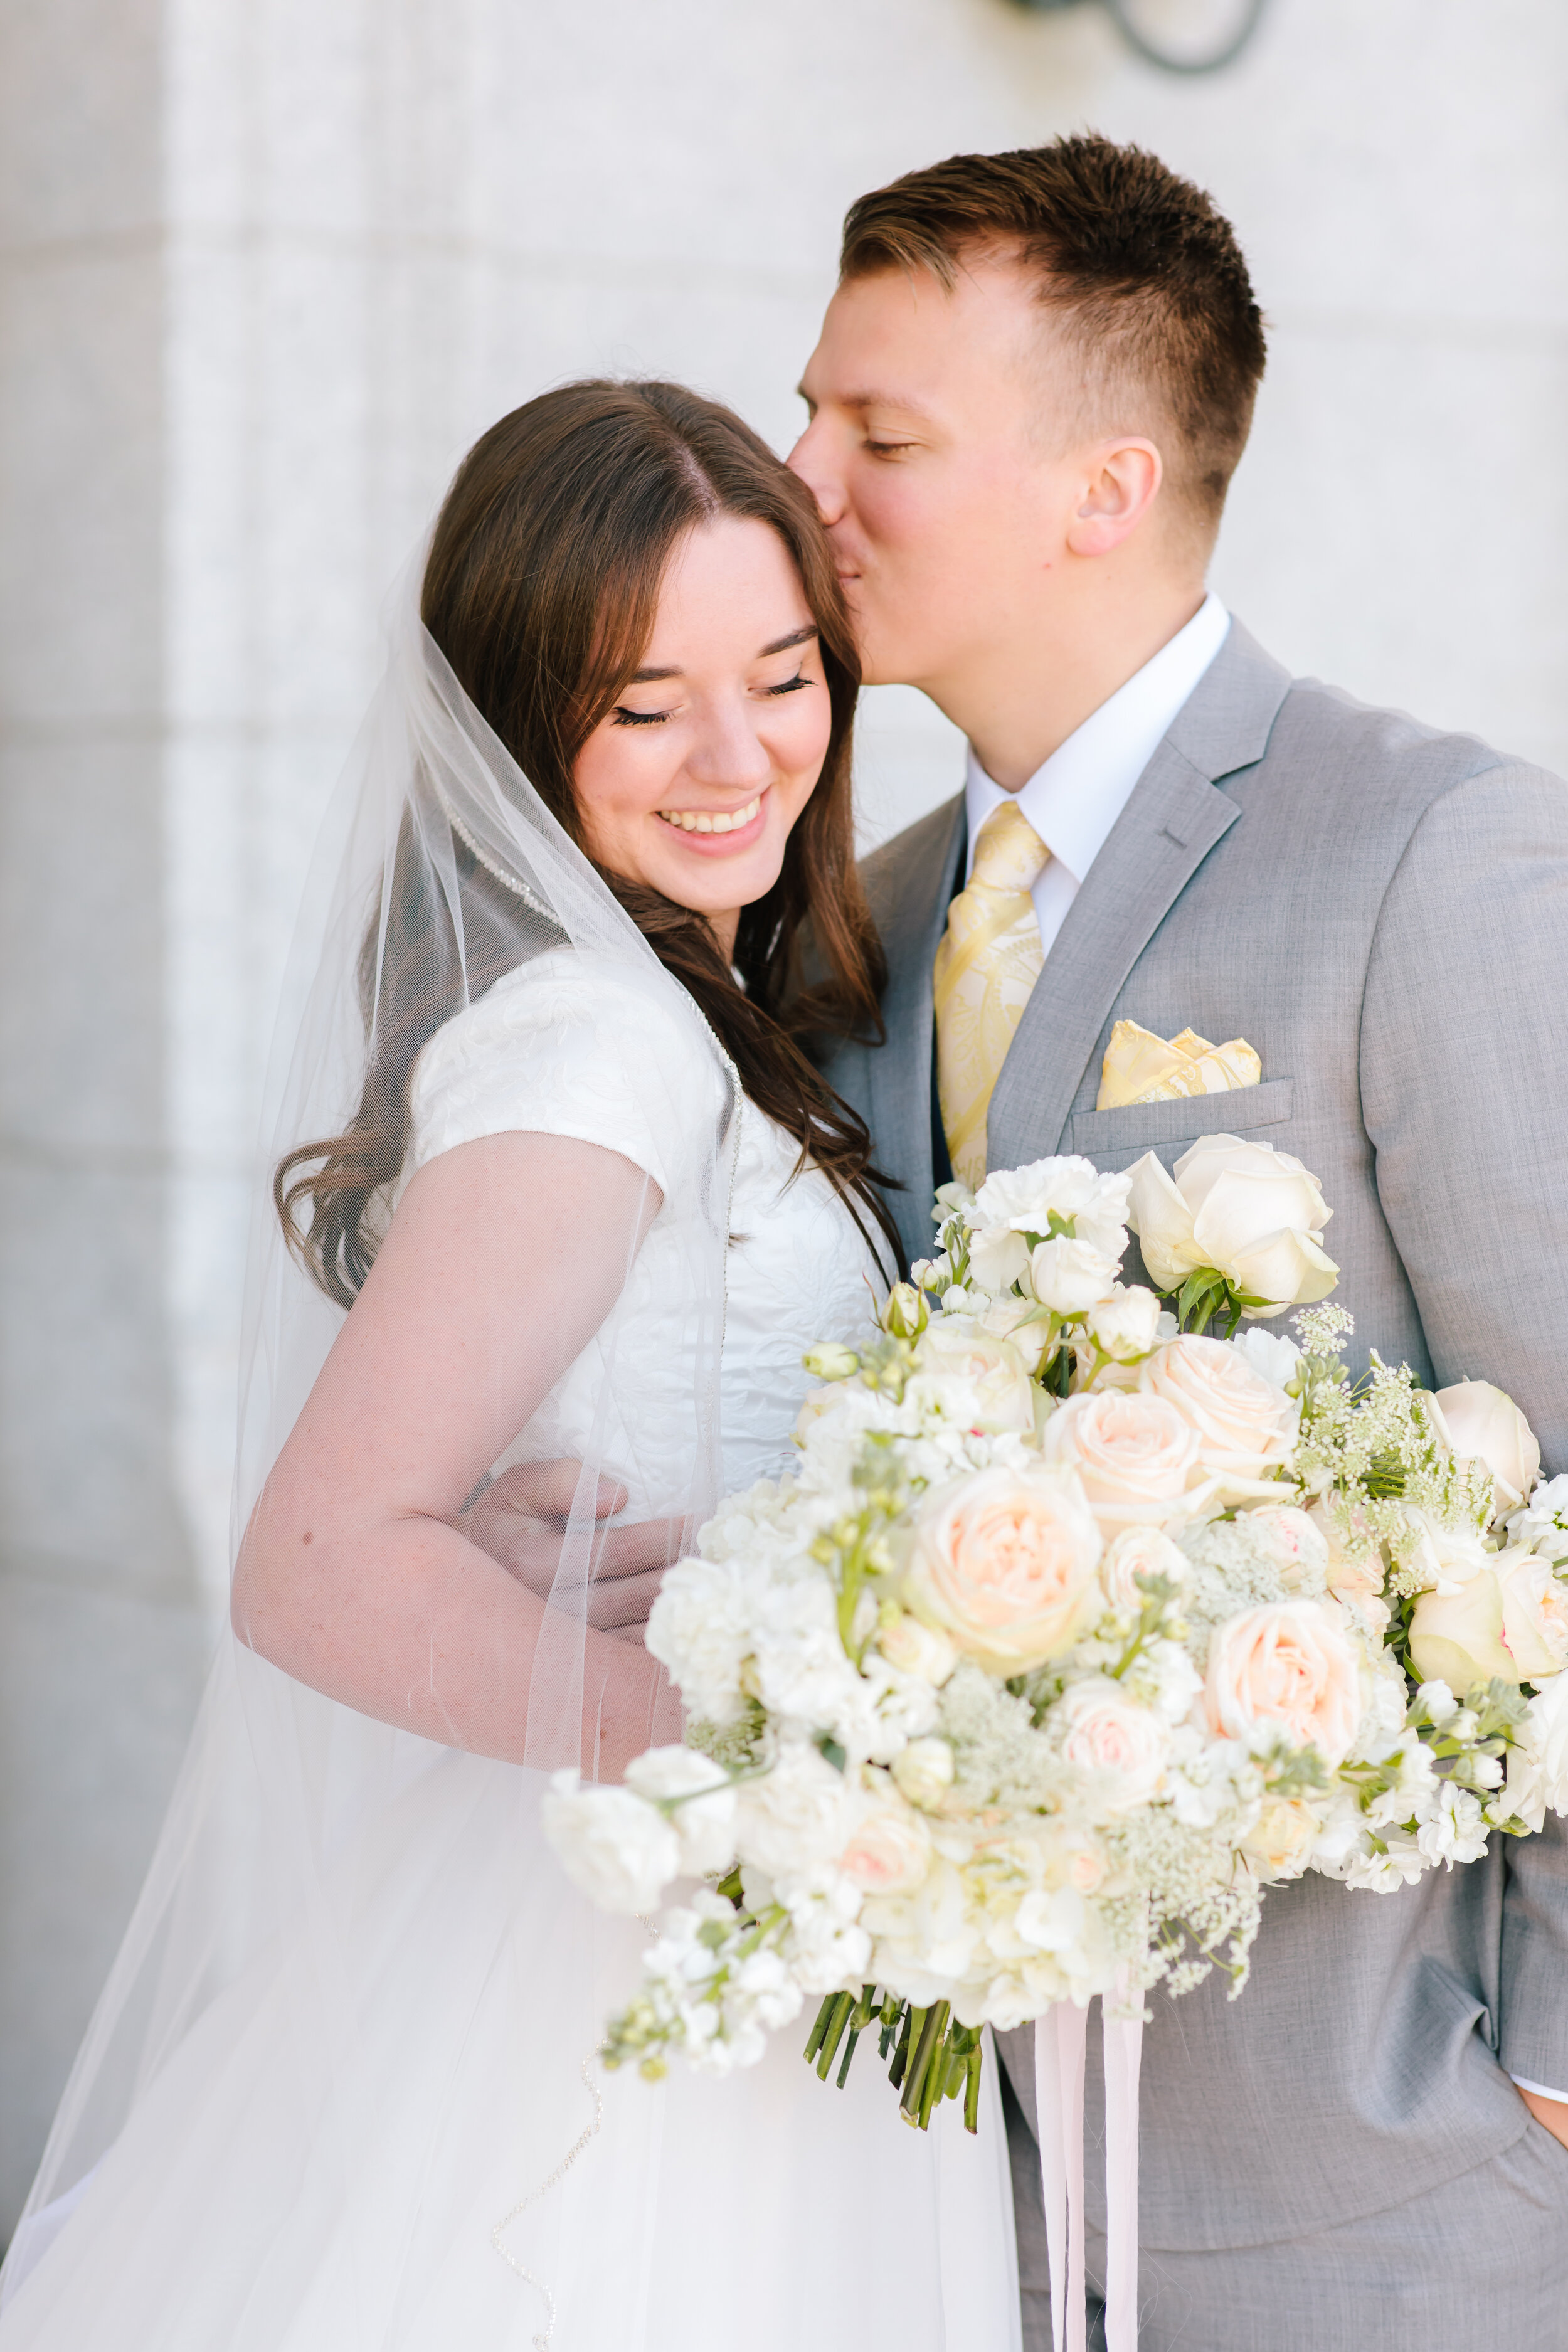 adorable kissing forehead couple pose inspiration early morning formal photo shoot session beautiful bride bridal attire inspiration modest wedding dress inspiration wedding veil inspiration beautiful white bouquet bouquet inspiration salt lake capital building photo shoot love #formals #saltlakecity #capitalbuilding #lovebirds #couplegoals #bridal #weddinginspo #wedding #professional #photographer